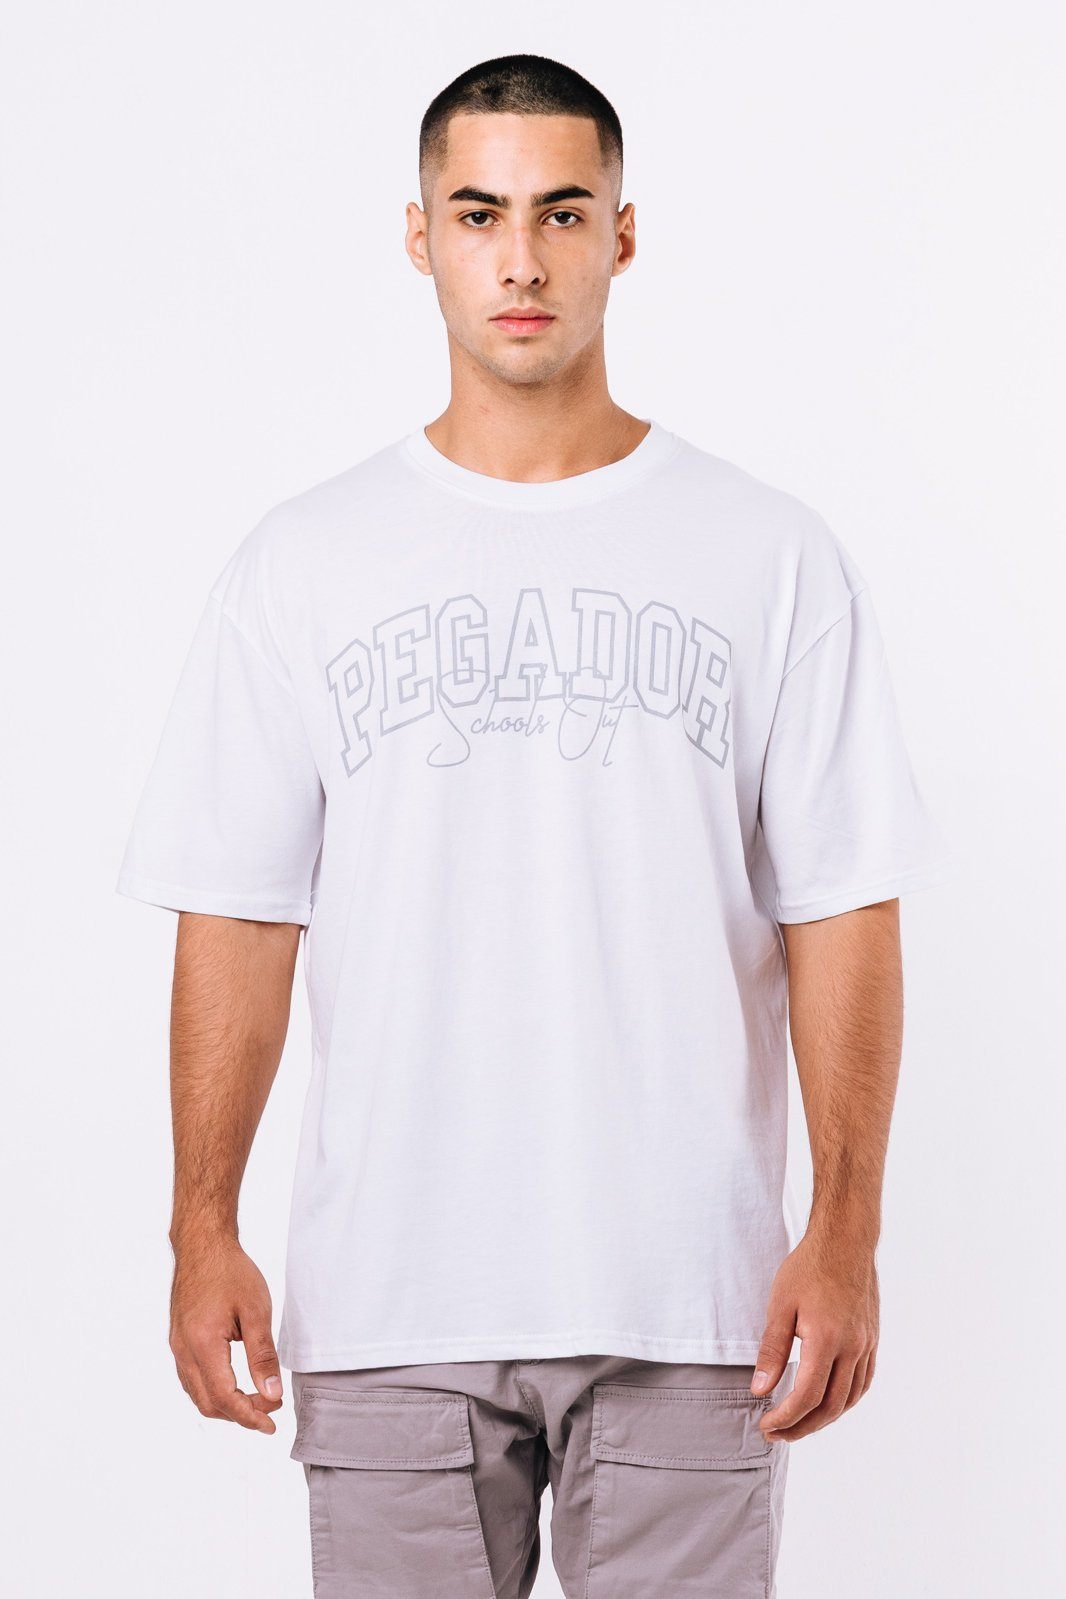 Vista Oversized Tee White T-SHIRT PEGADOR